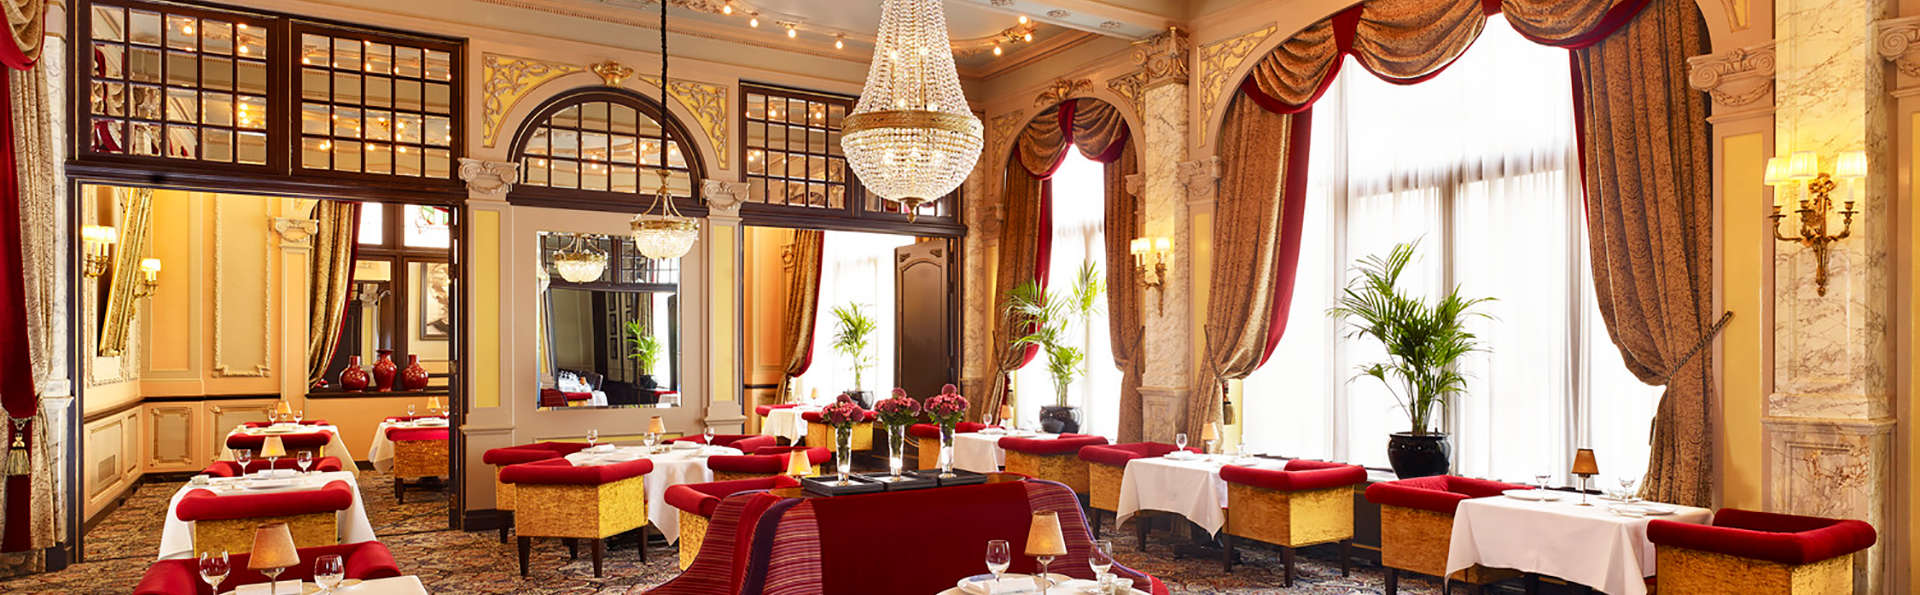 Hotel Des Indes, The Leading Hotels Of The World - Edit_Restaurant.jpg